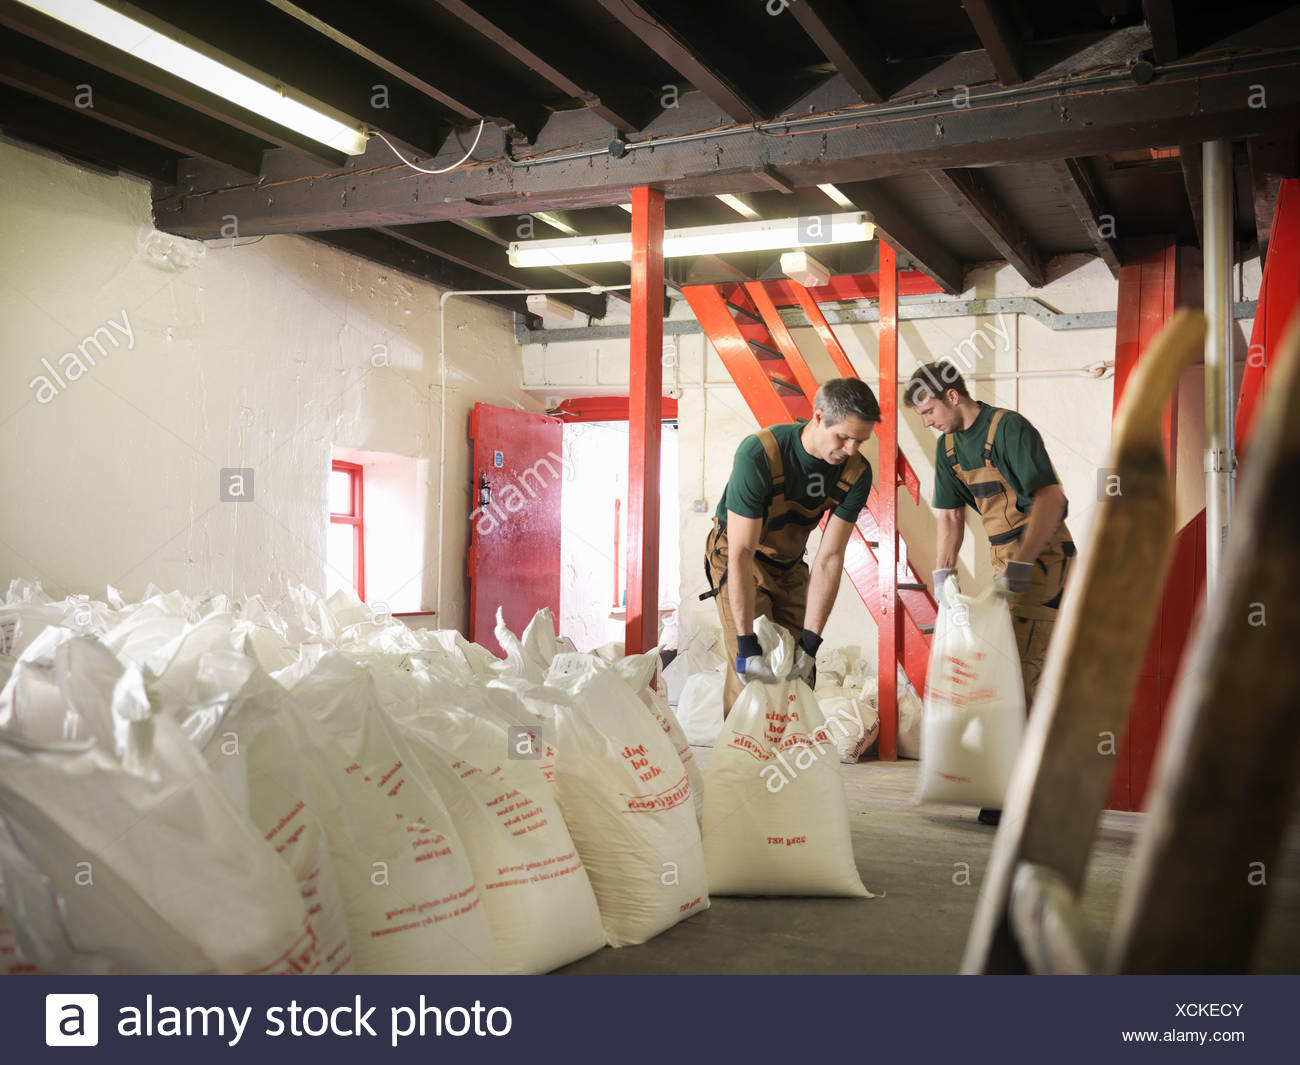 Workers with sacks of grain in brewery - Stock Image